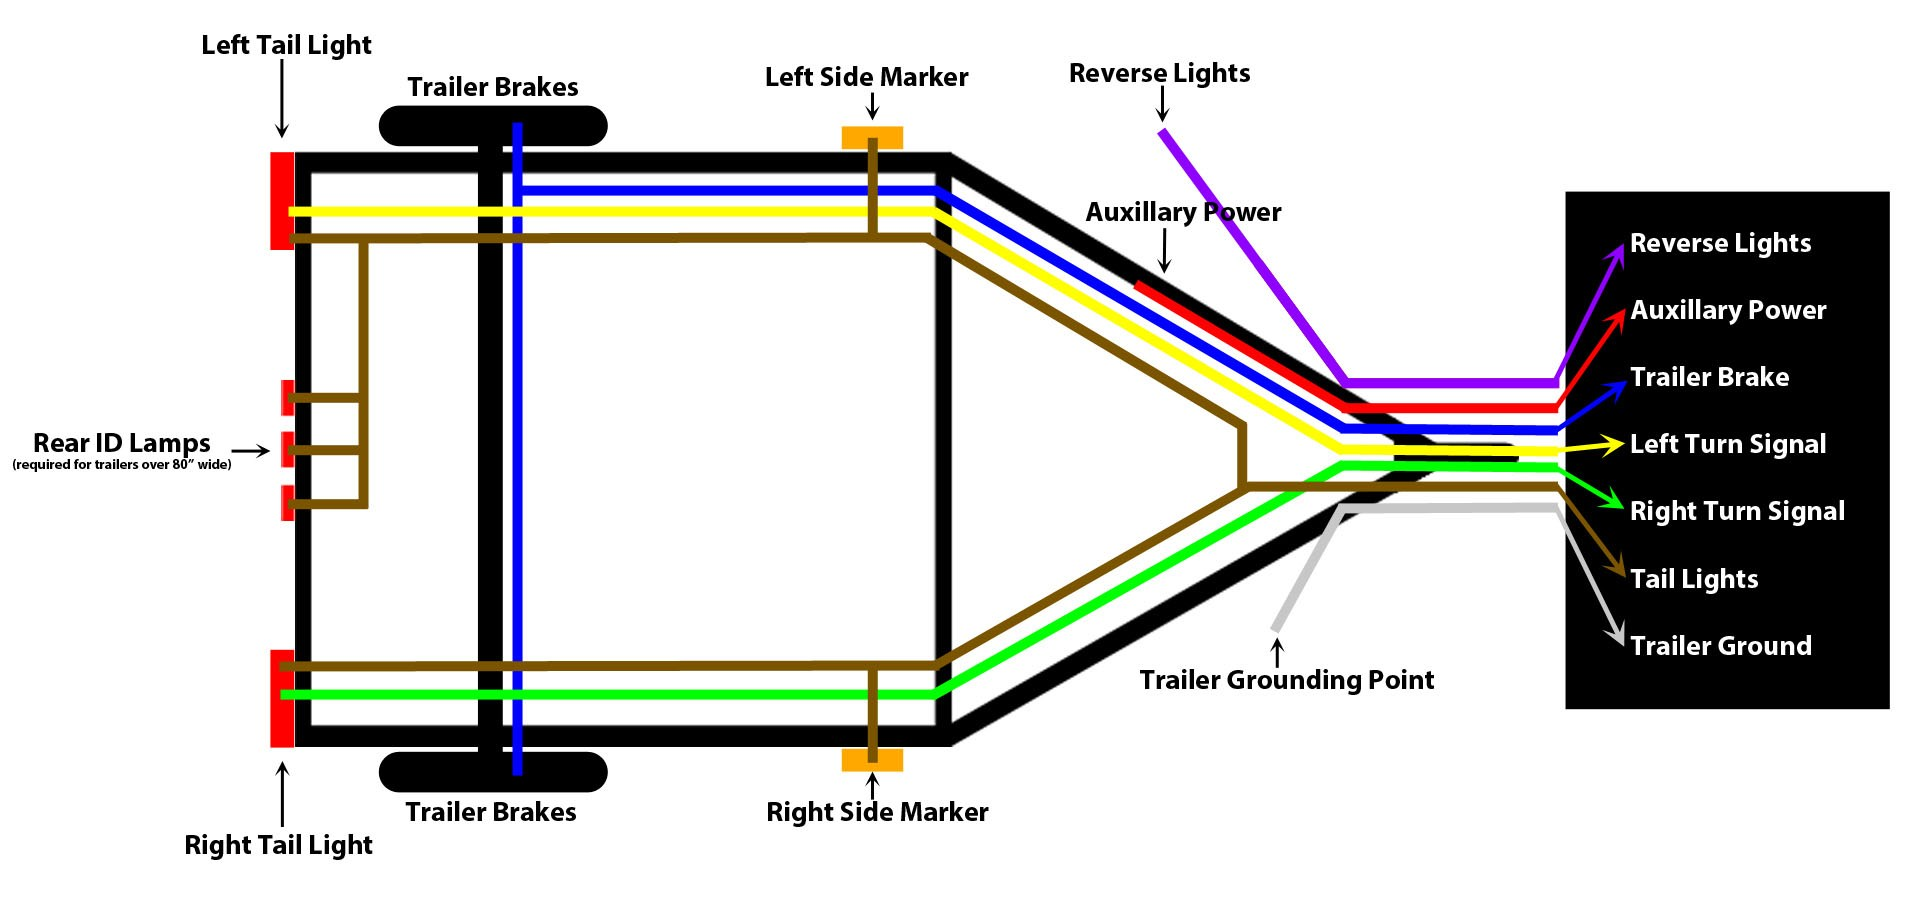 [DIAGRAM_3US]  OS_4474] Trailer Light Wiring On How To Wire A Trailer With Lights Brakes  Ehow Free Diagram   Cherokee Horse Trailer Wiring Diagram      Phon Epete Chor Nerve Scata Alypt Joami Exmet Mohammedshrine Librar Wiring  101